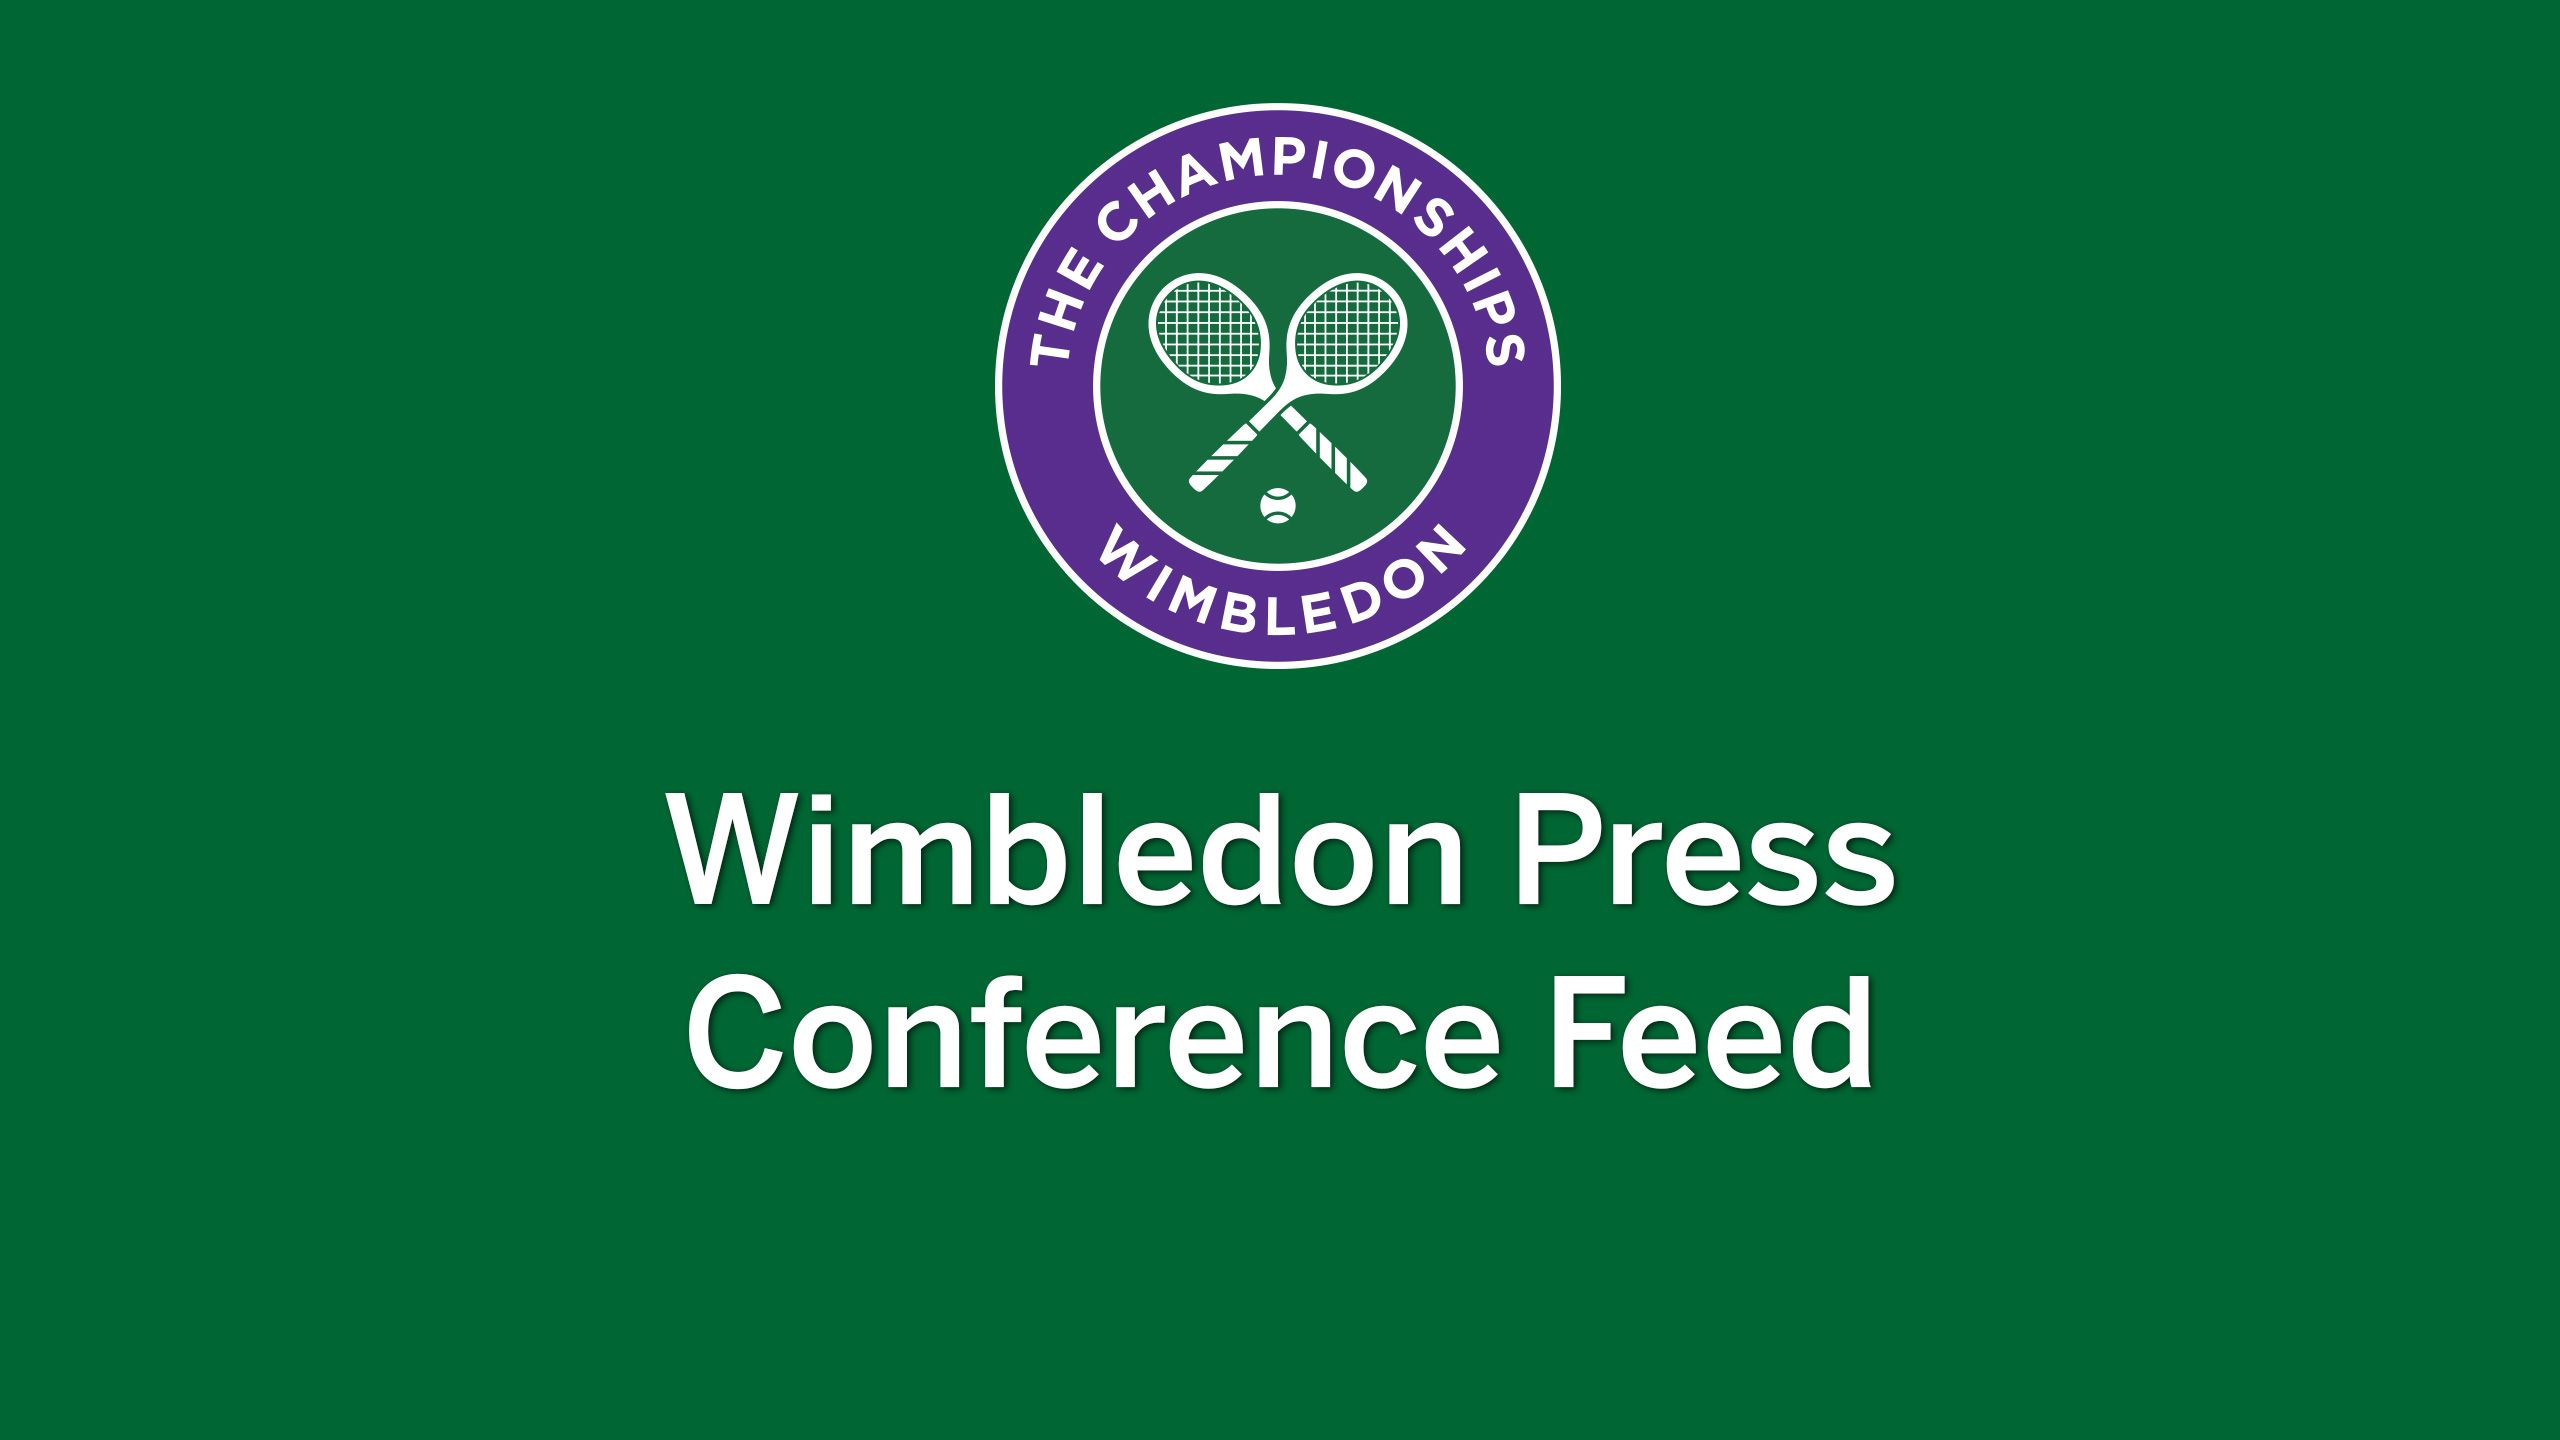 Wimbledon Press Conferences - Feed 2